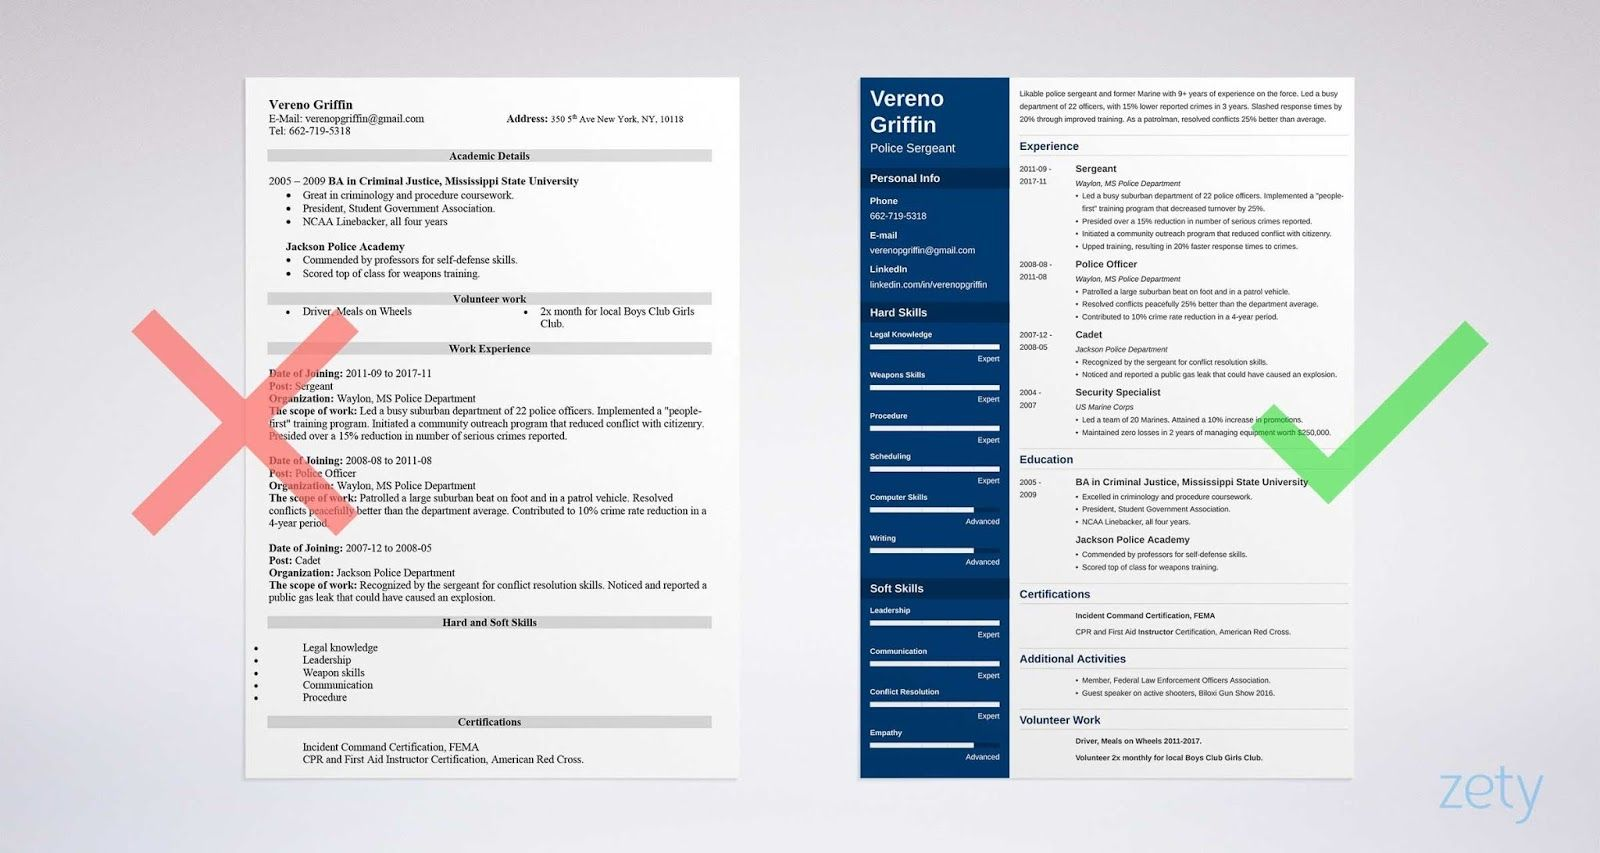 Police Officer resume templates, police officer resume